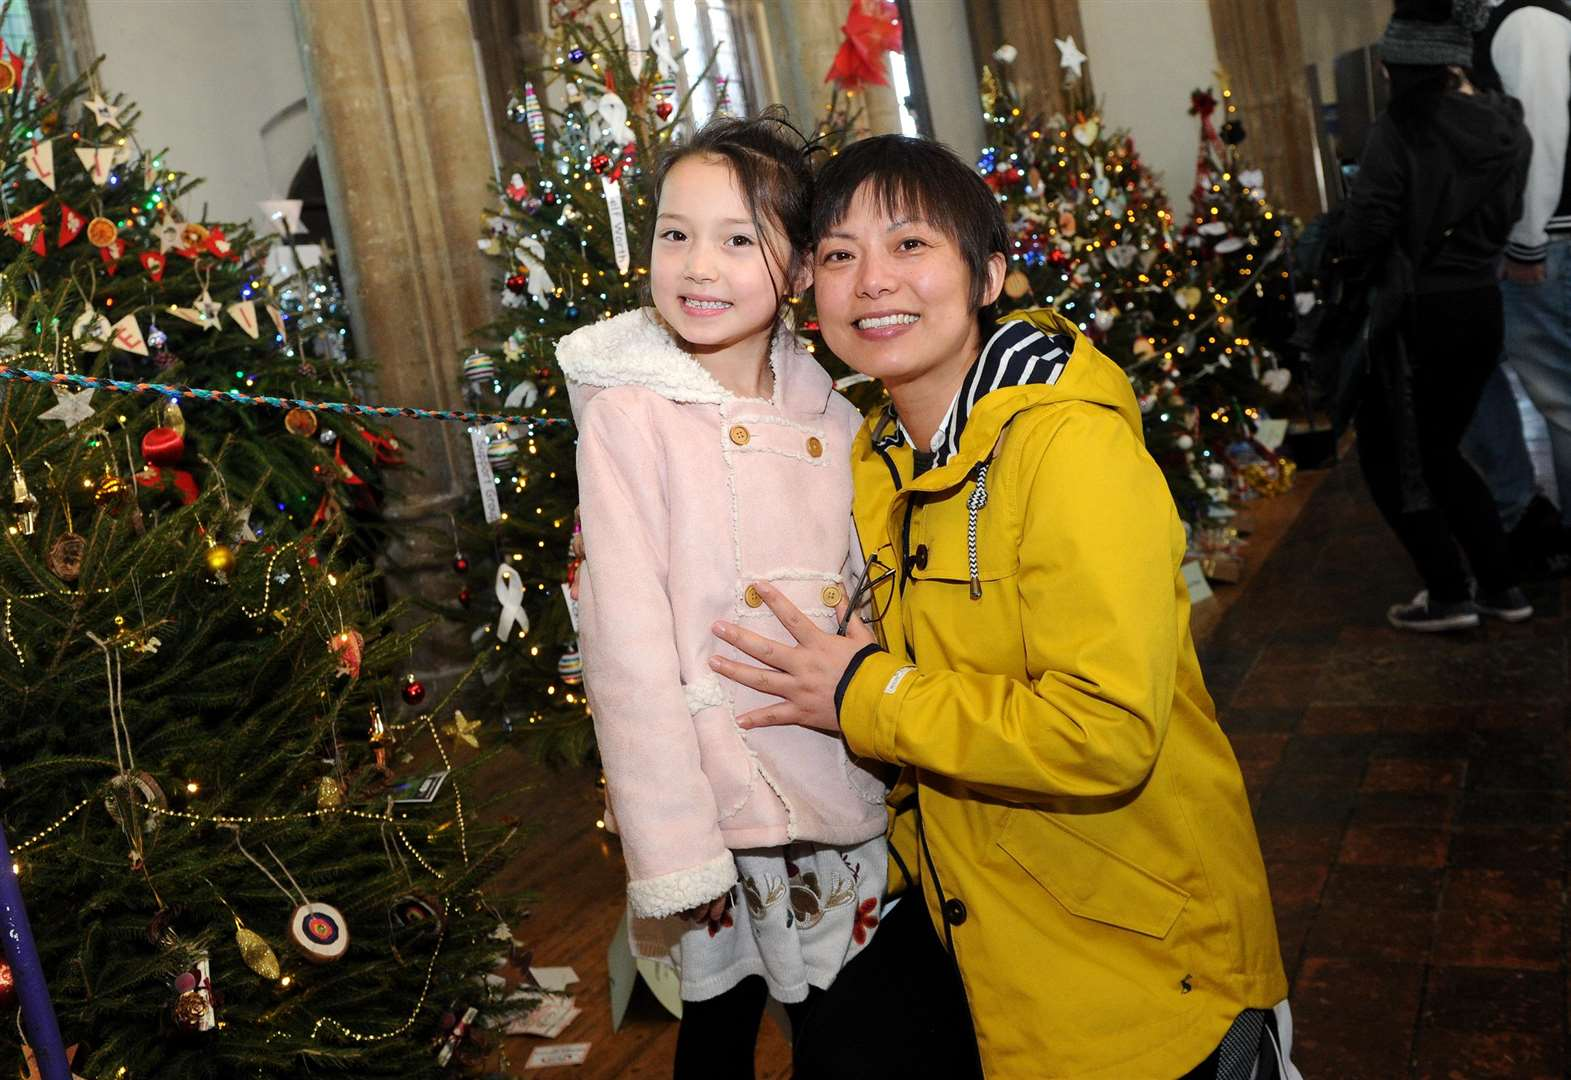 PICTURES: Annual Christmas festival in Sudbury proves tree-mendous